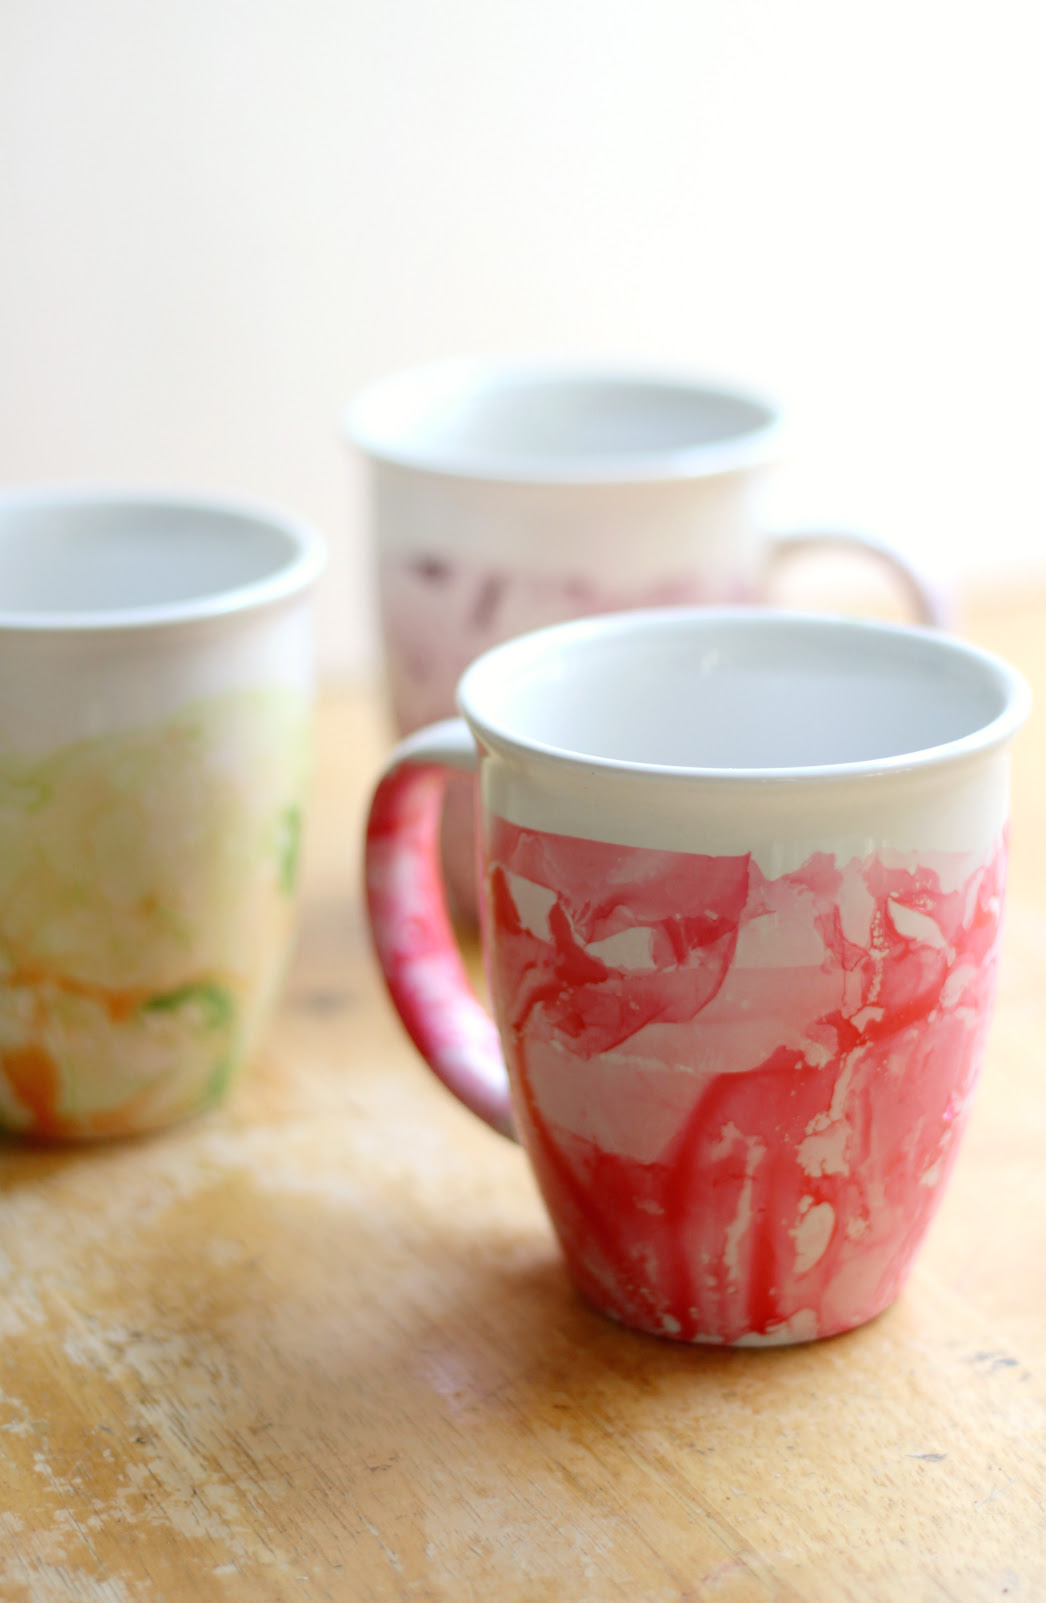 DIY Marbled Nail Polish Mugs | Strength and Sunshine @RebeccaGF666 Easy DIY marbled nail polish mugs make the perfect homemade gift! A simple craft done in a few minutes that looks like it took hours of work!